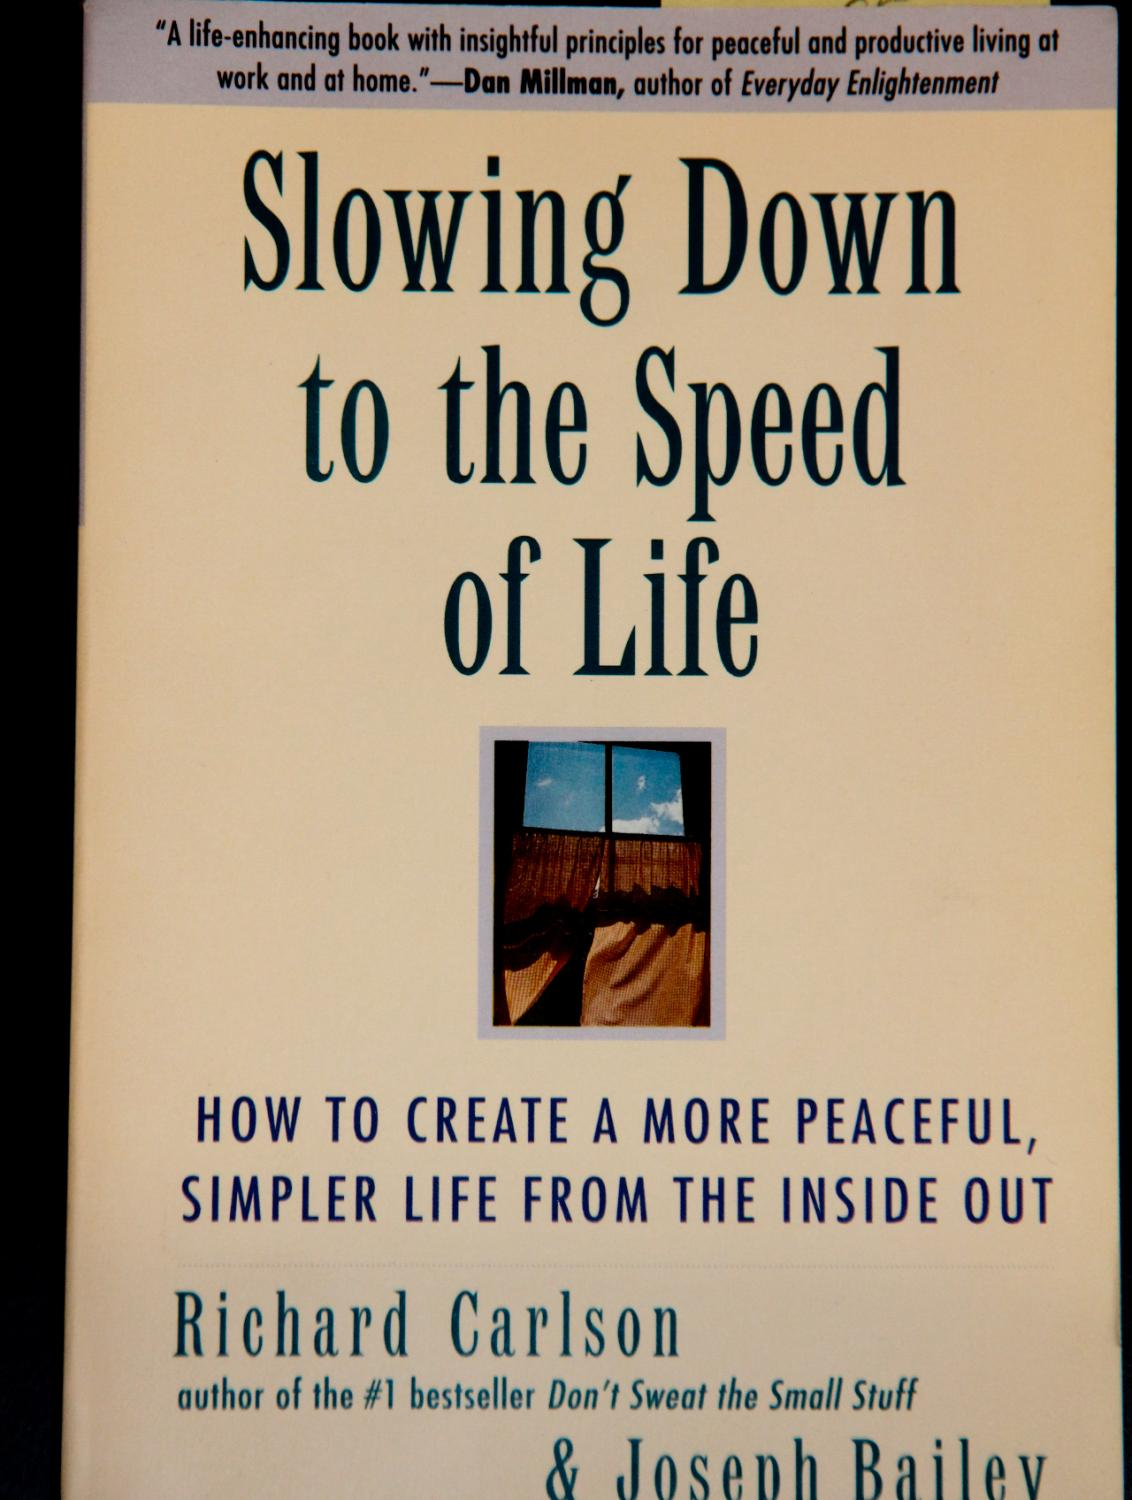 Simpler Life from the Inside Out How to Create a More Peaceful Slowing Down to the Speed of Life